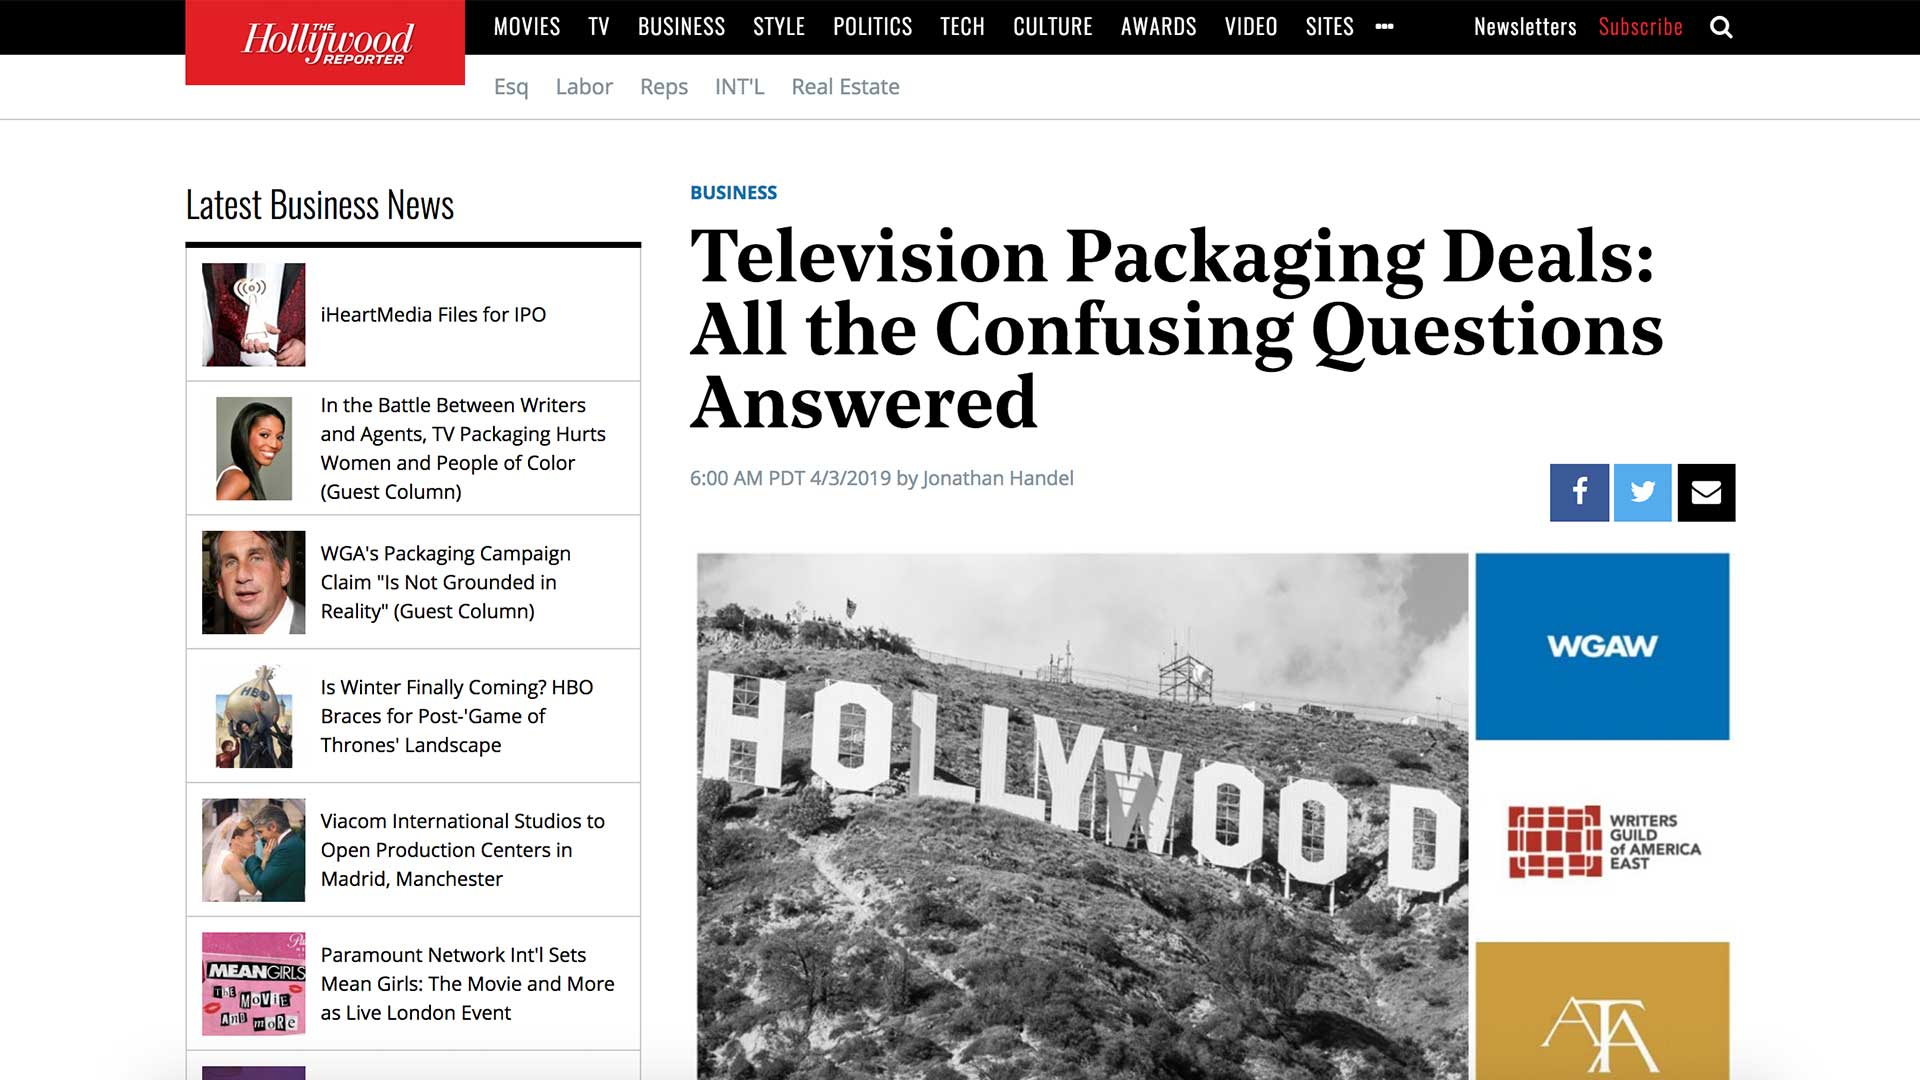 Fairness Rocks News Television Packaging Deals: All the Confusing Questions Answered